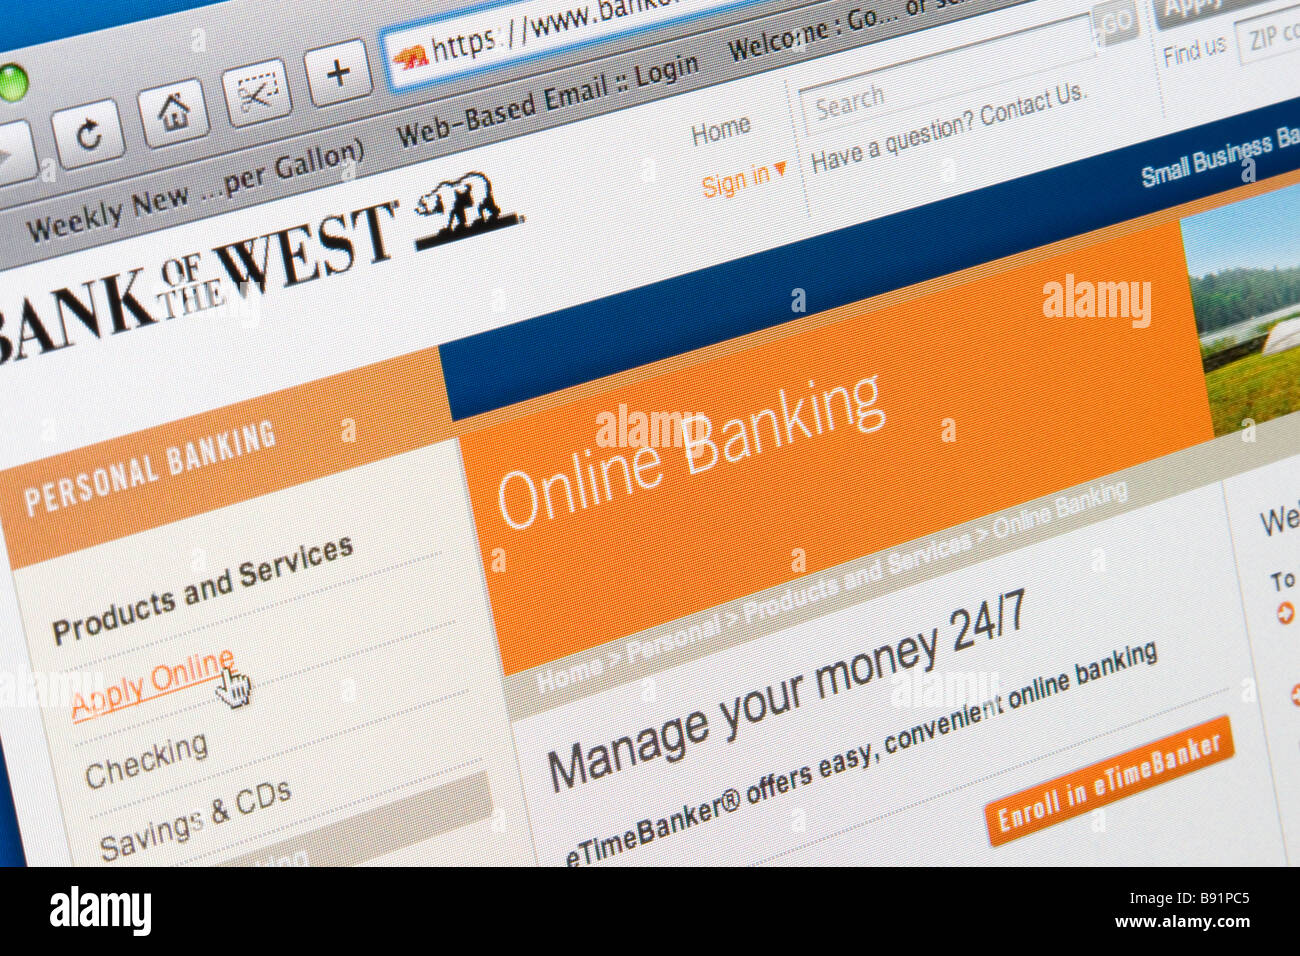 An online banking website. - Stock Image